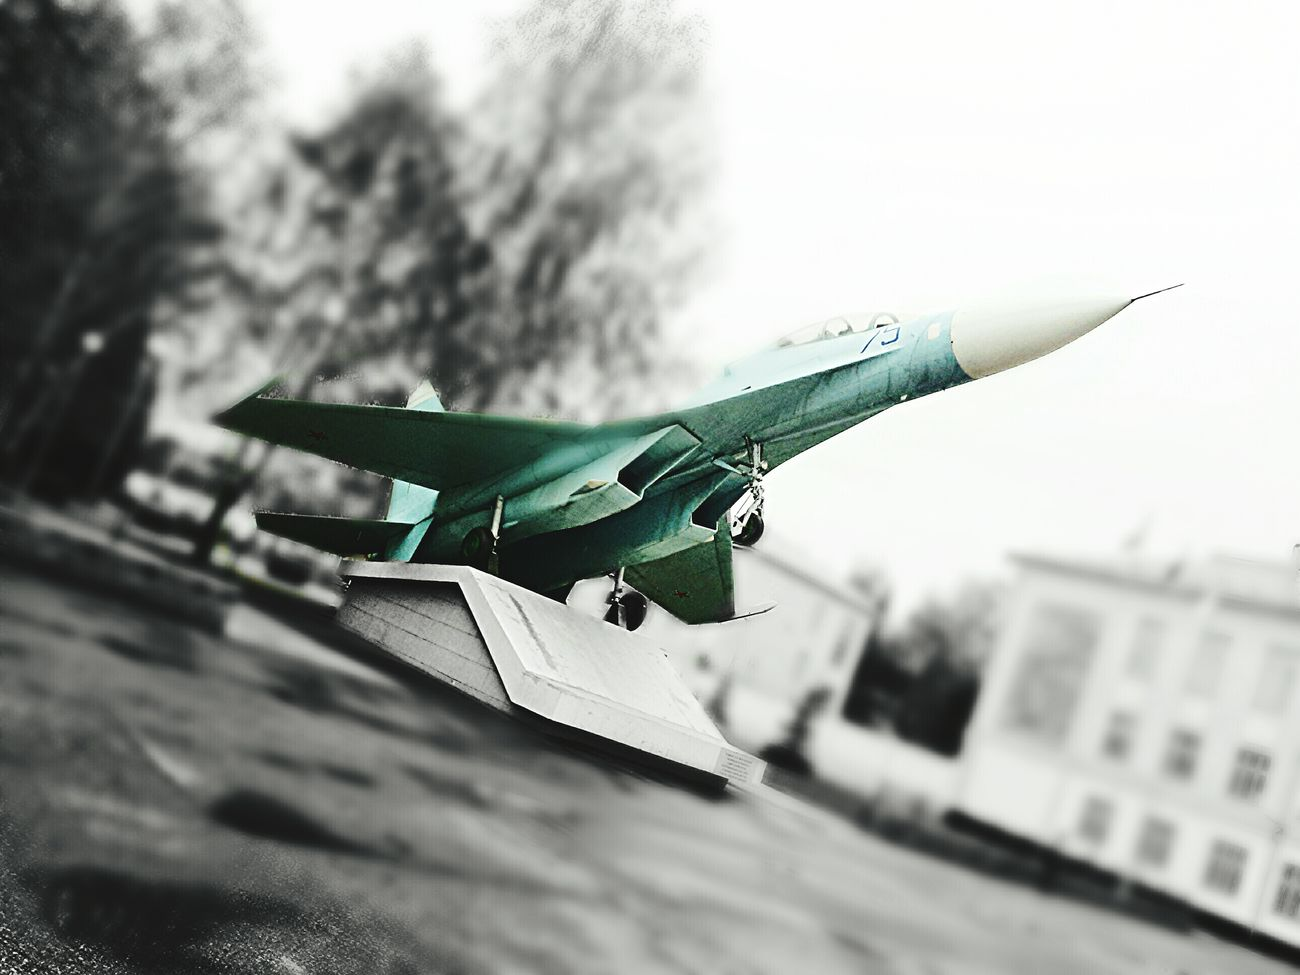 Russian Jet Fighter